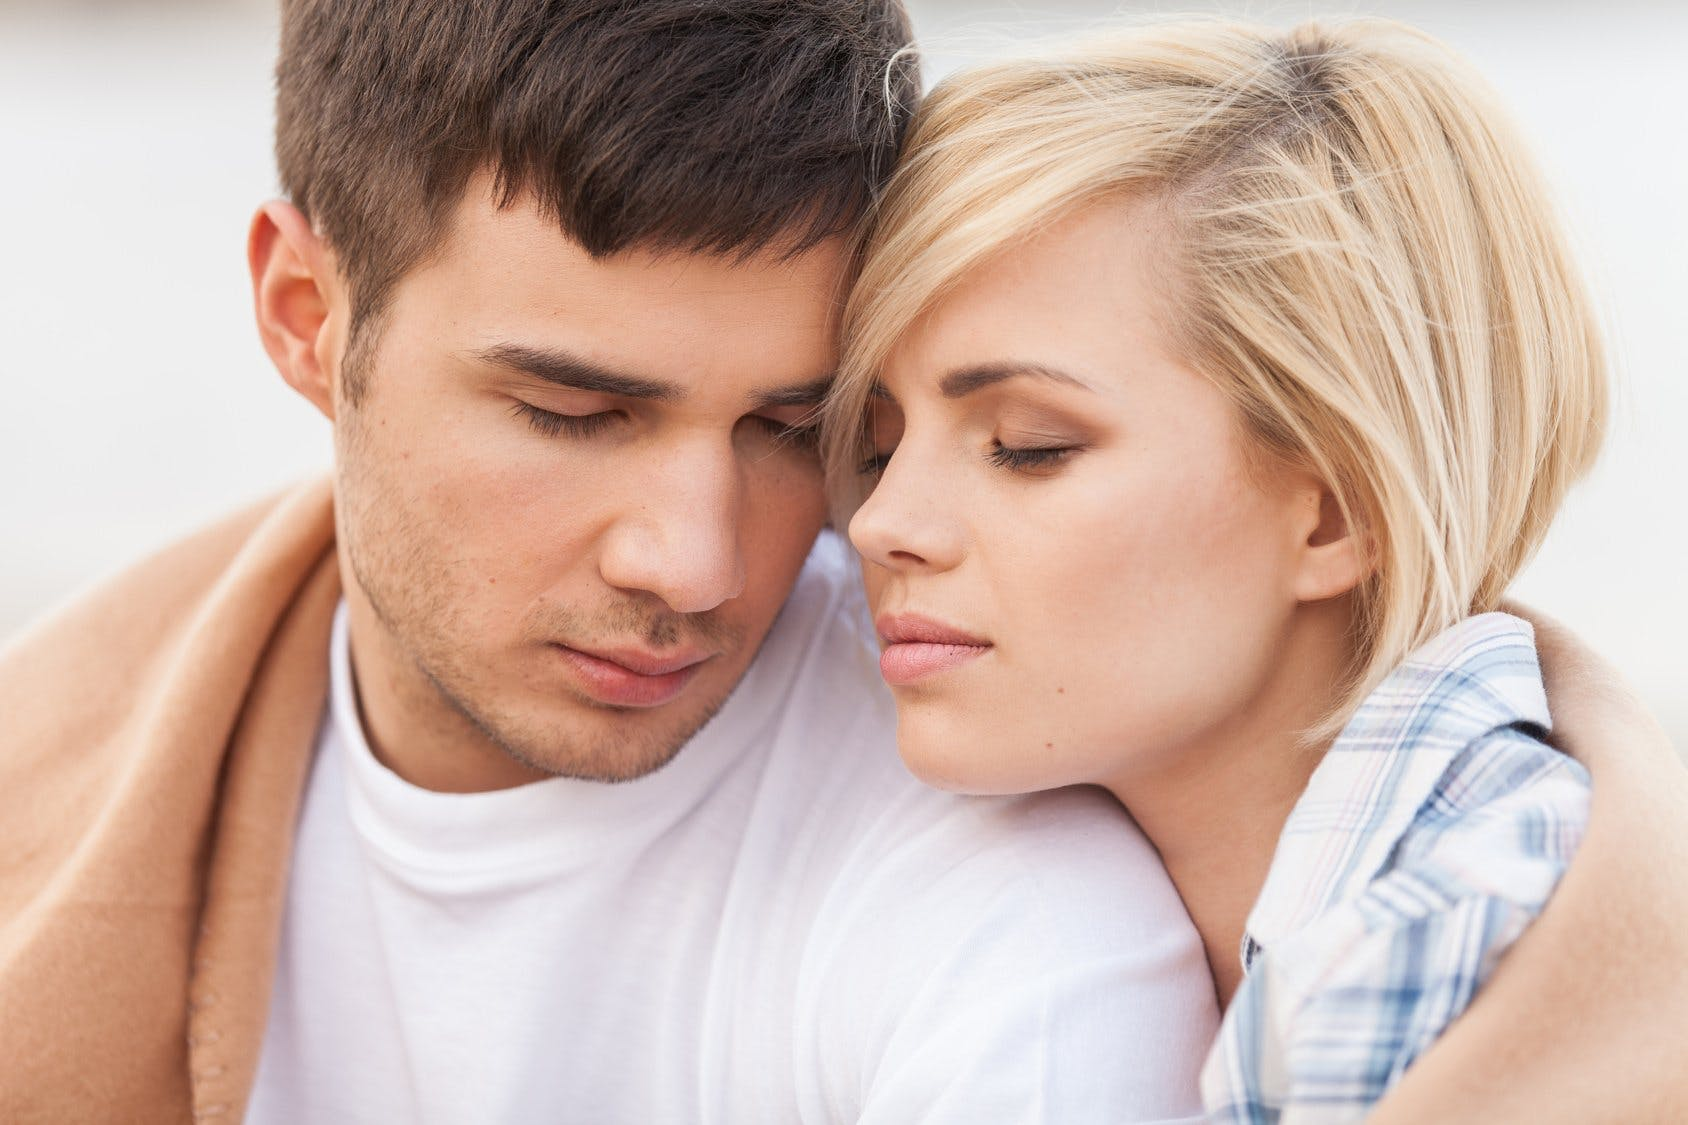 7 Tips For a Romantic Relationship